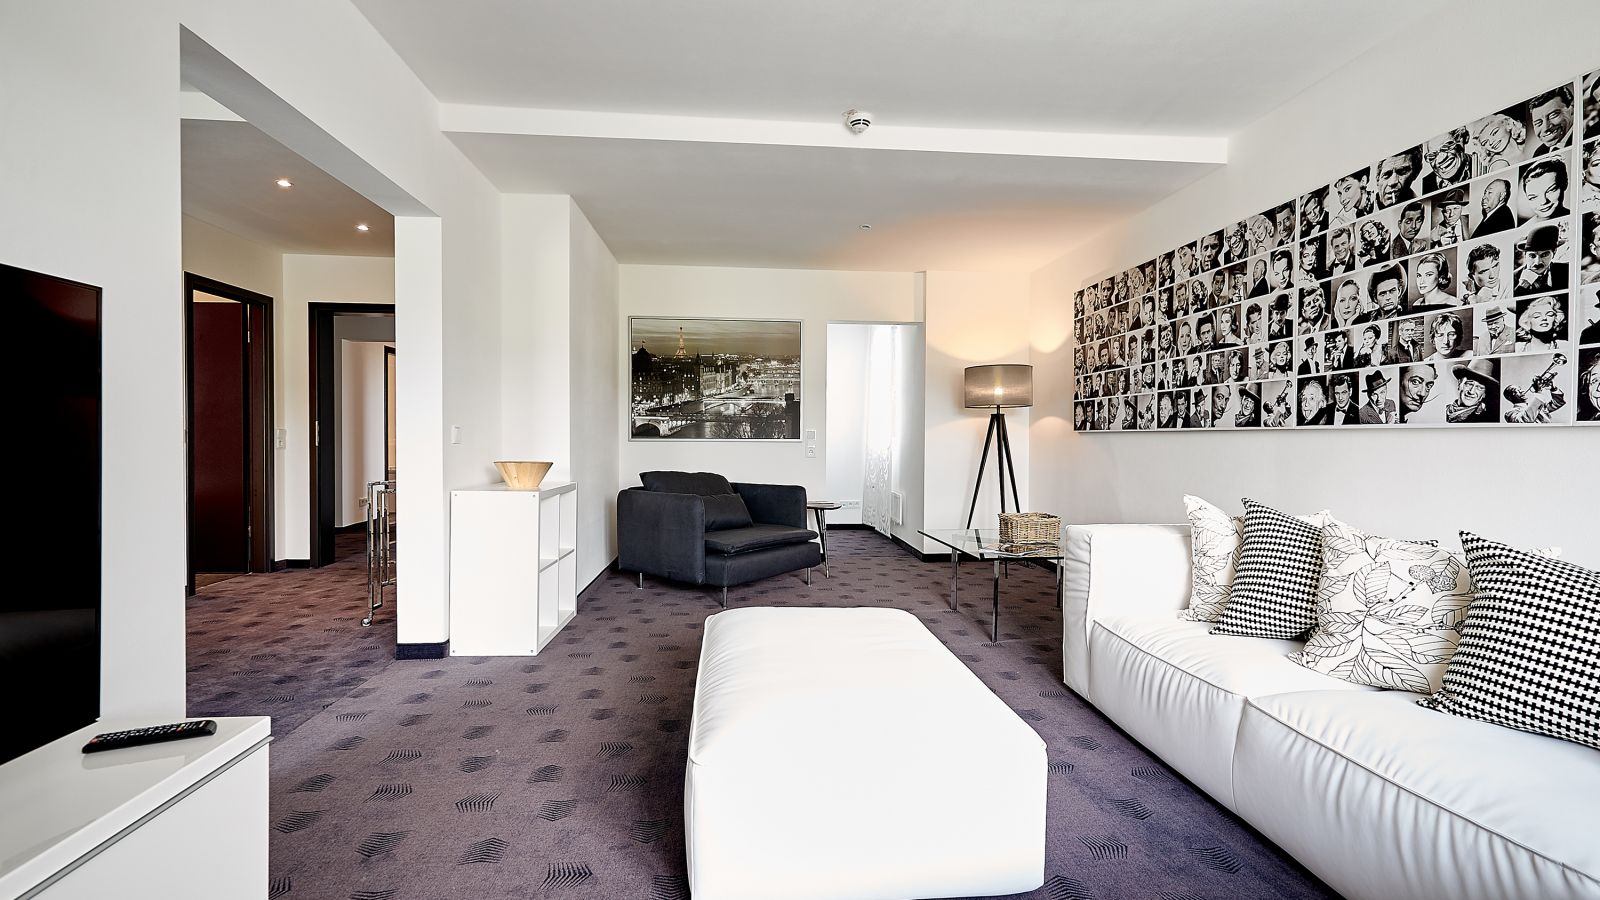 Executive Apartment im FourSide Plaza Hotel Trier